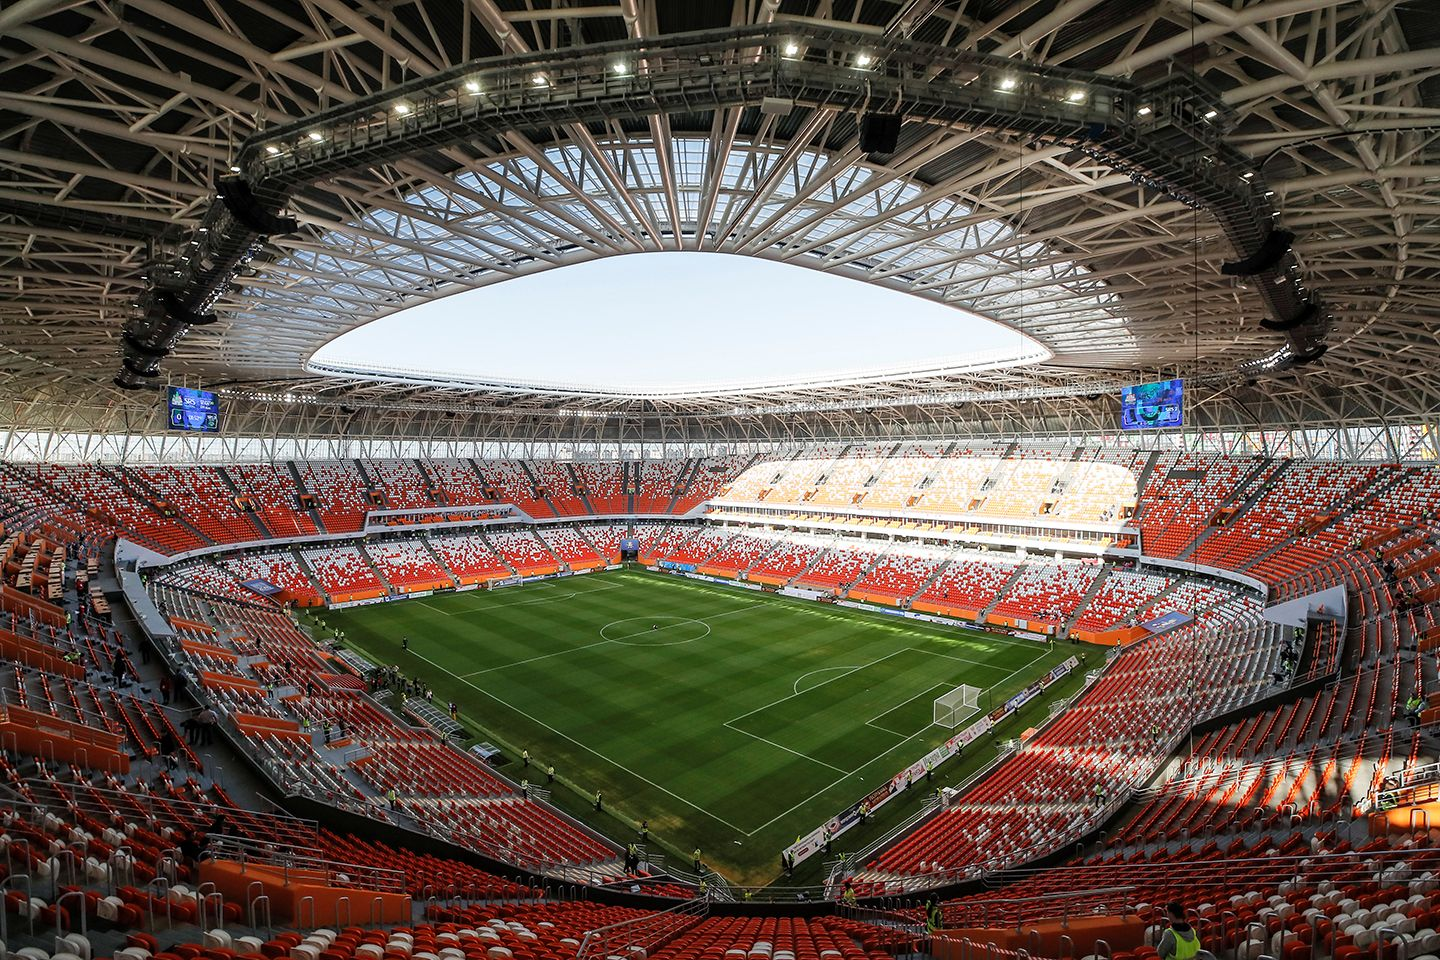 FE_WorldCup_06_RC1A02B1D5D0